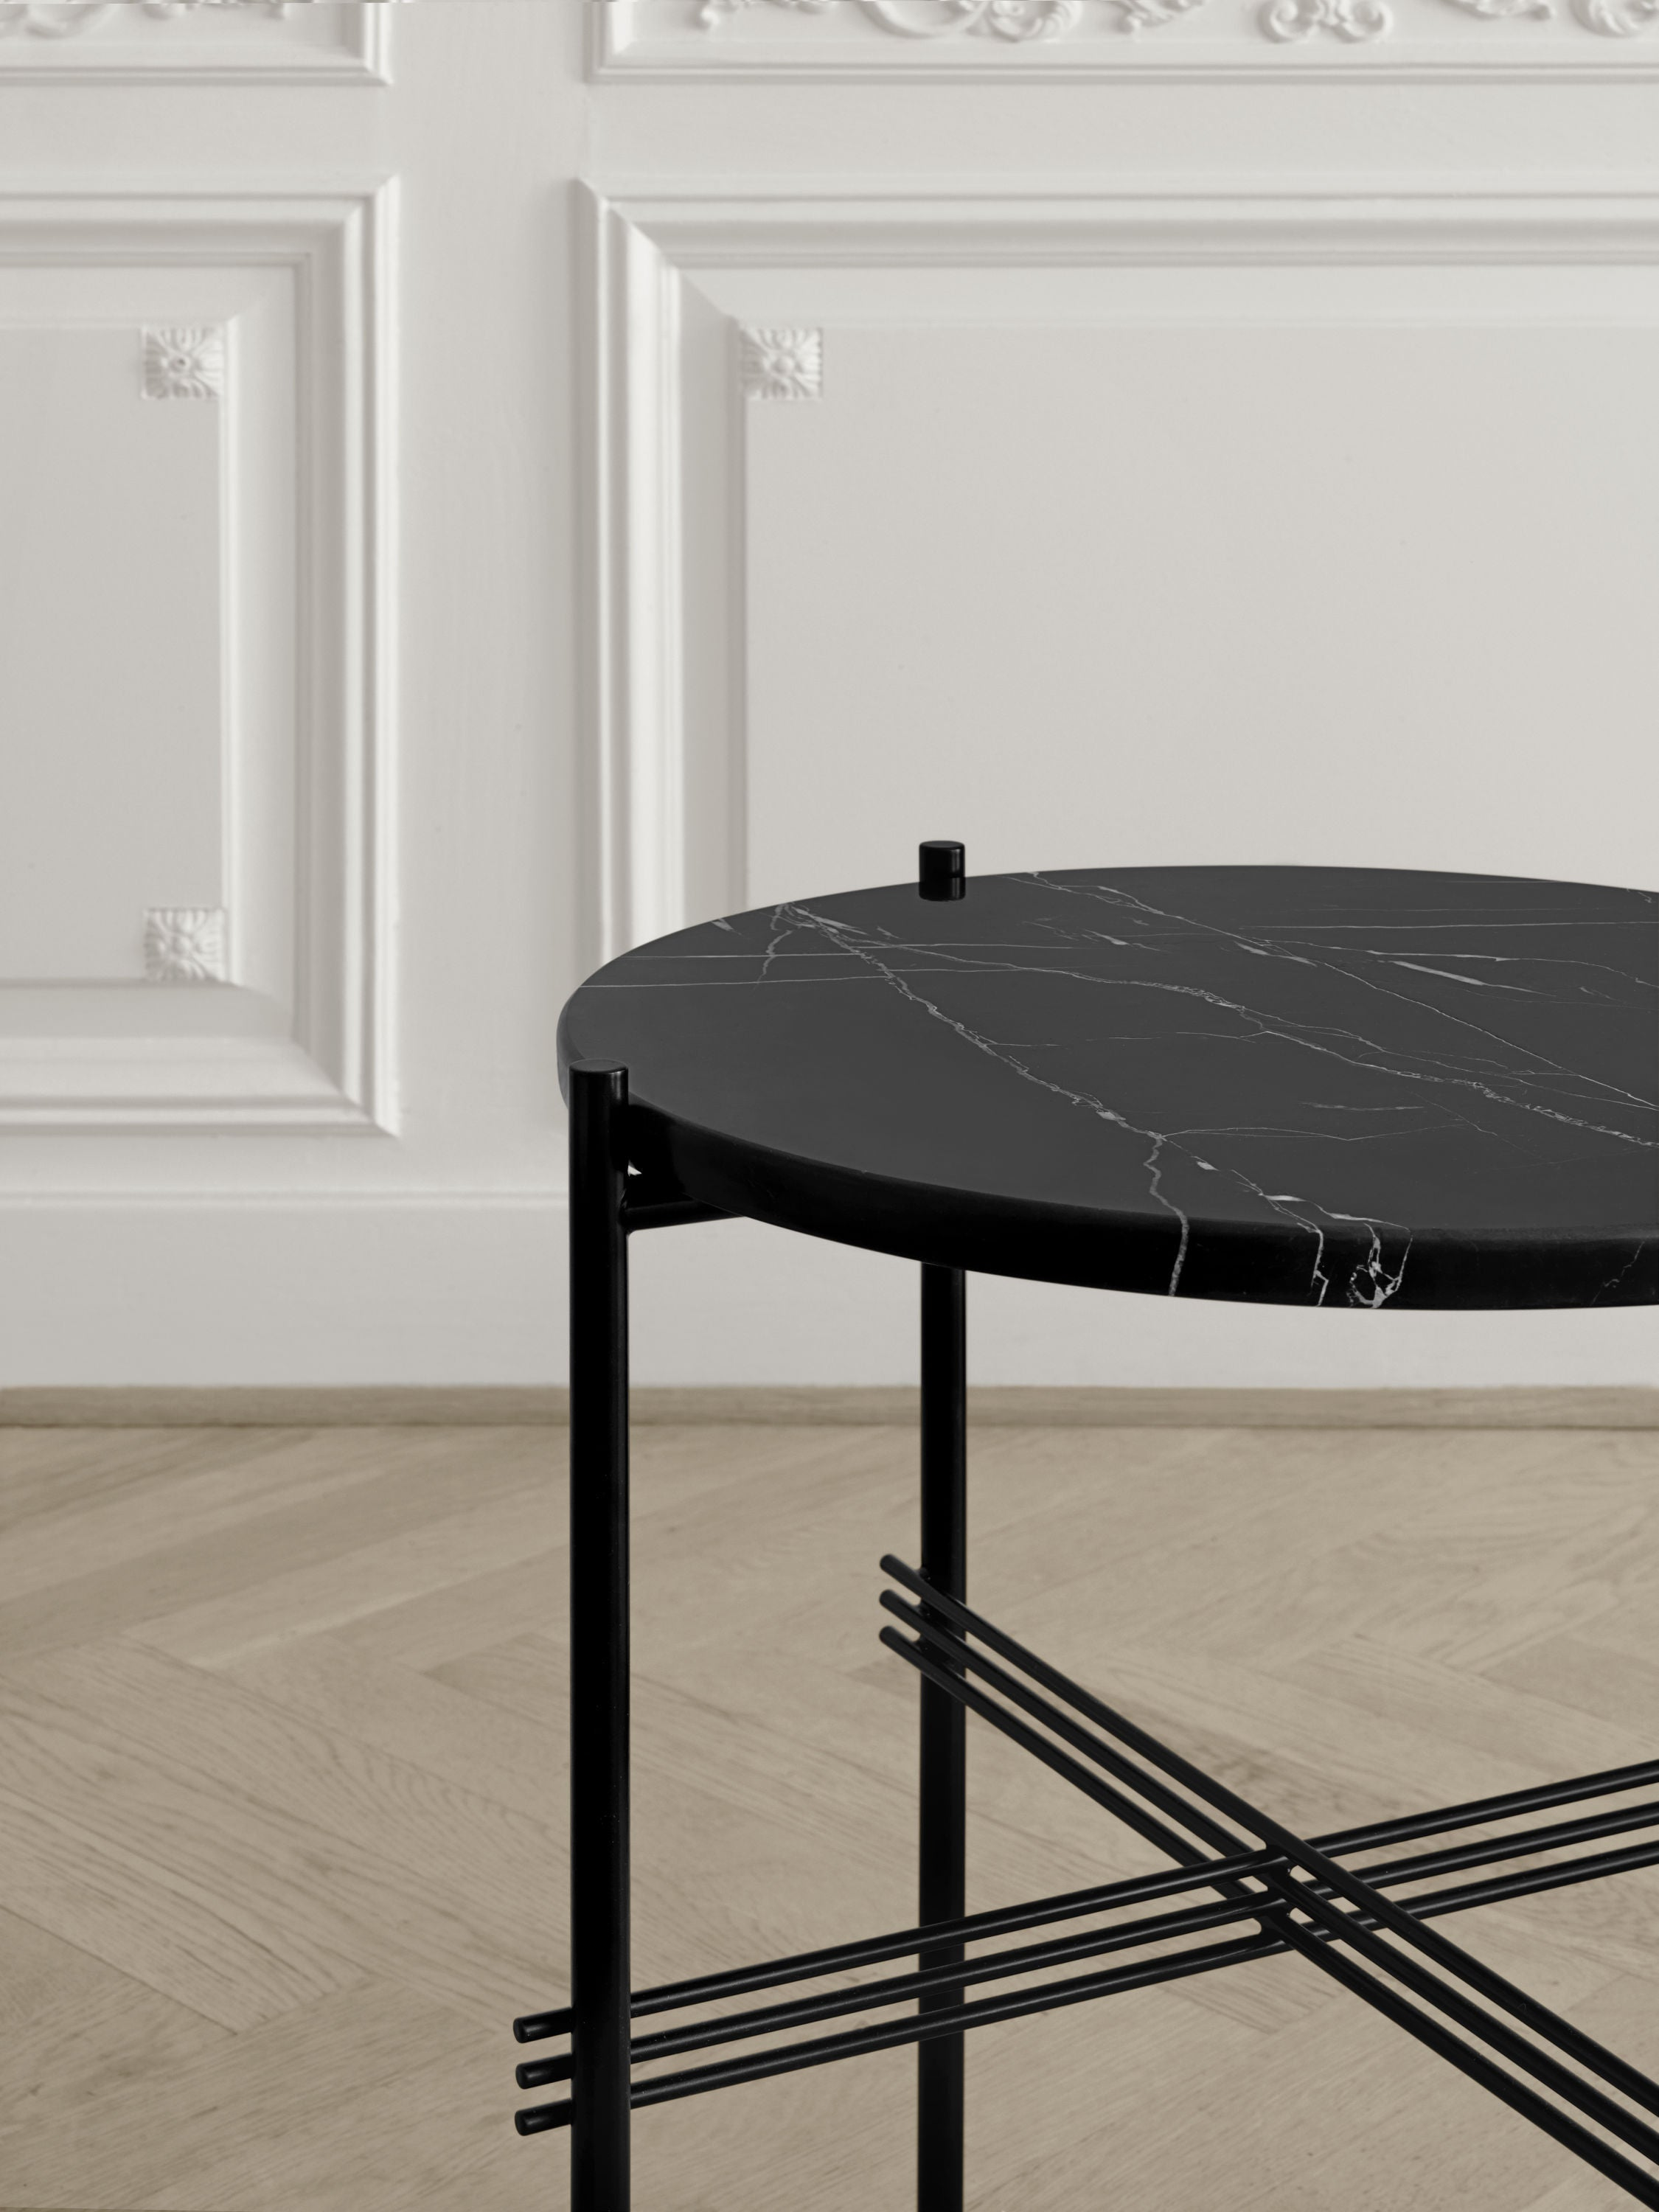 TS Coffee Table - Dia 105 Black base, glass rusty red top fra GUBI